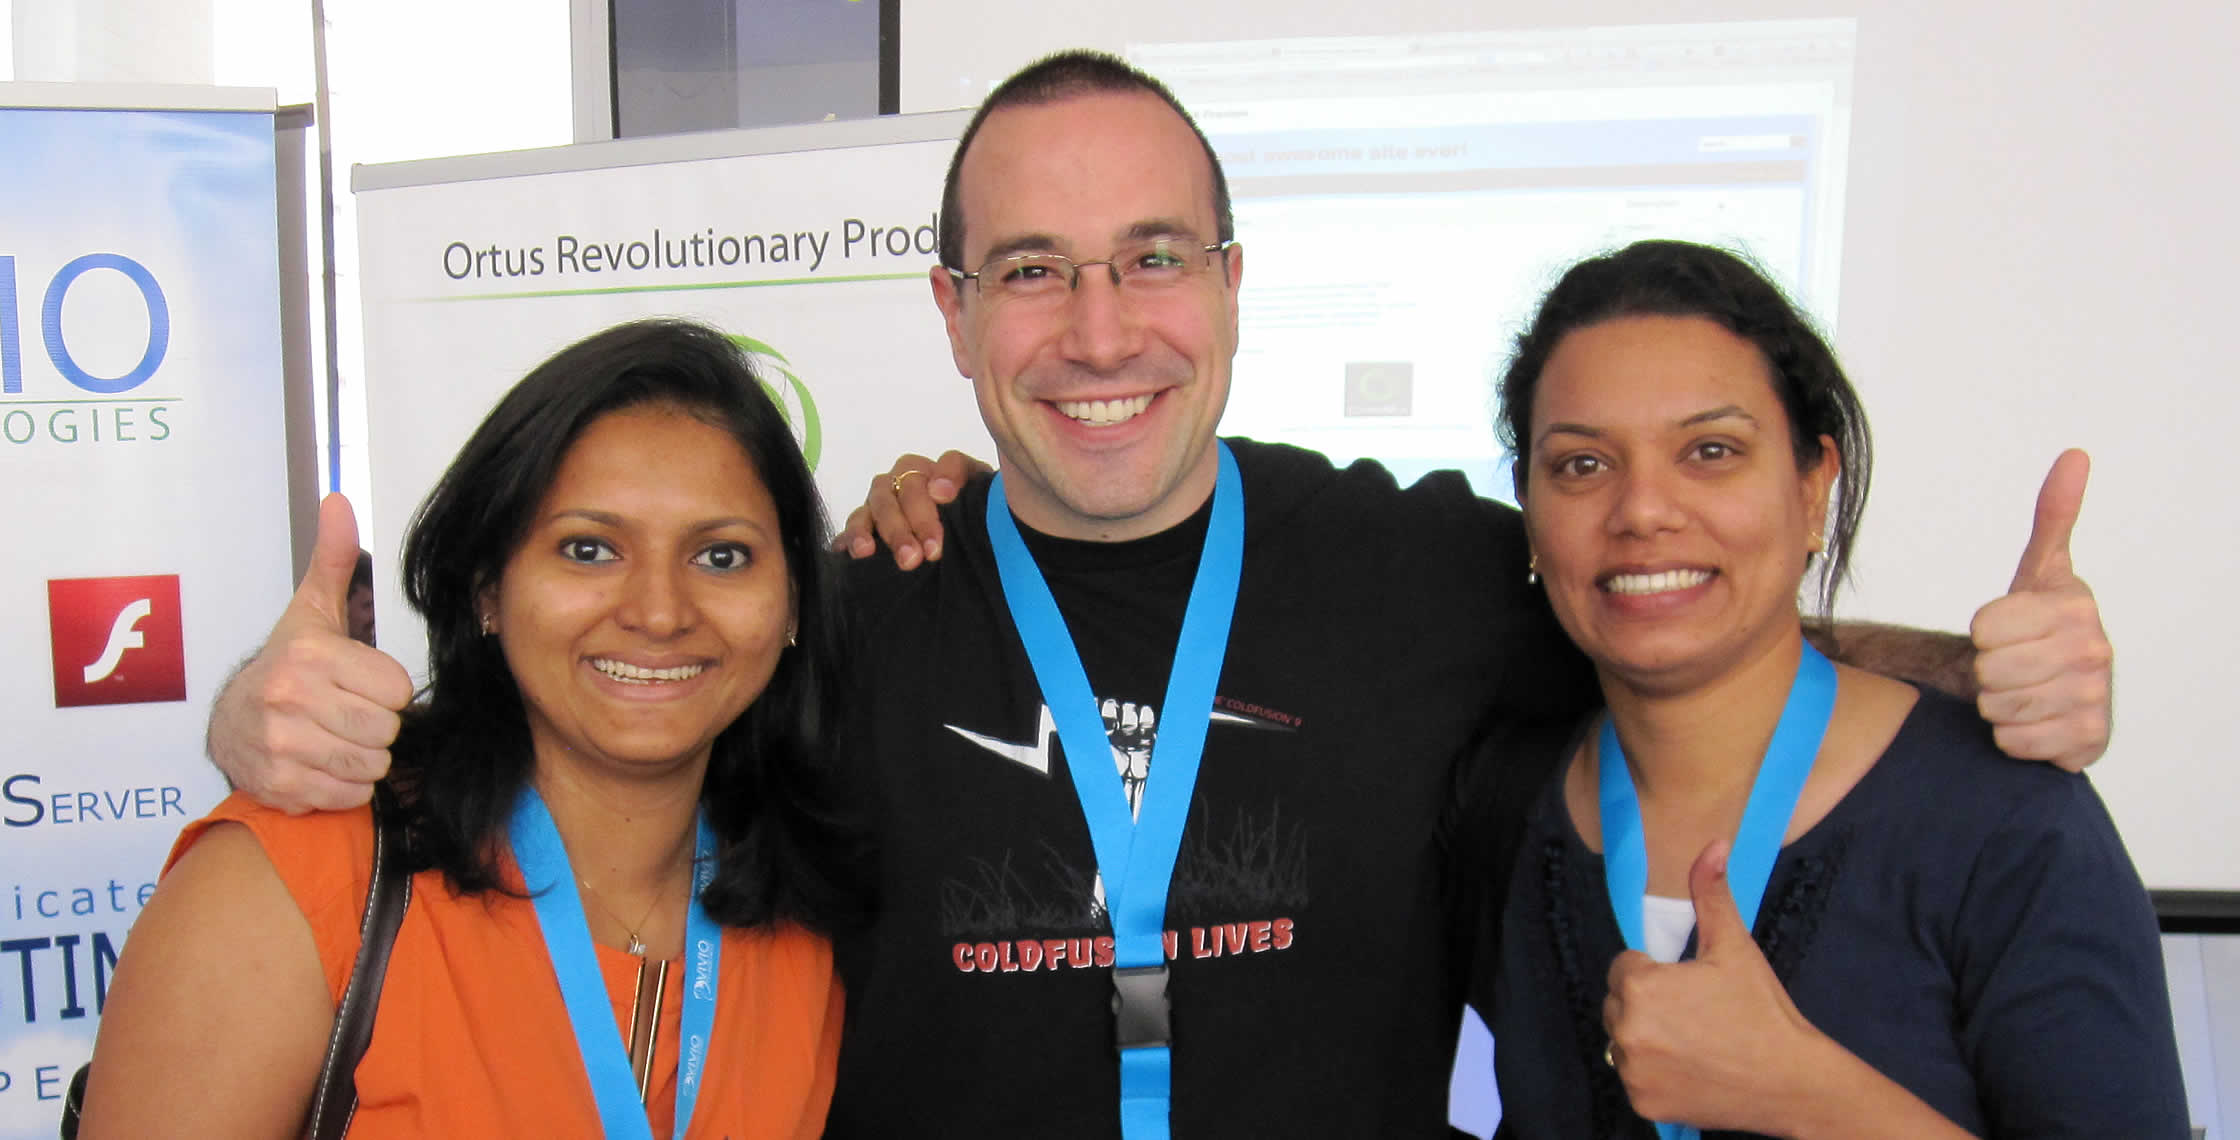 Ben Nadel at cf.Objective() 2013 (Bloomington, MN) with: Loveena Dsouza and Ritika Chowdhary